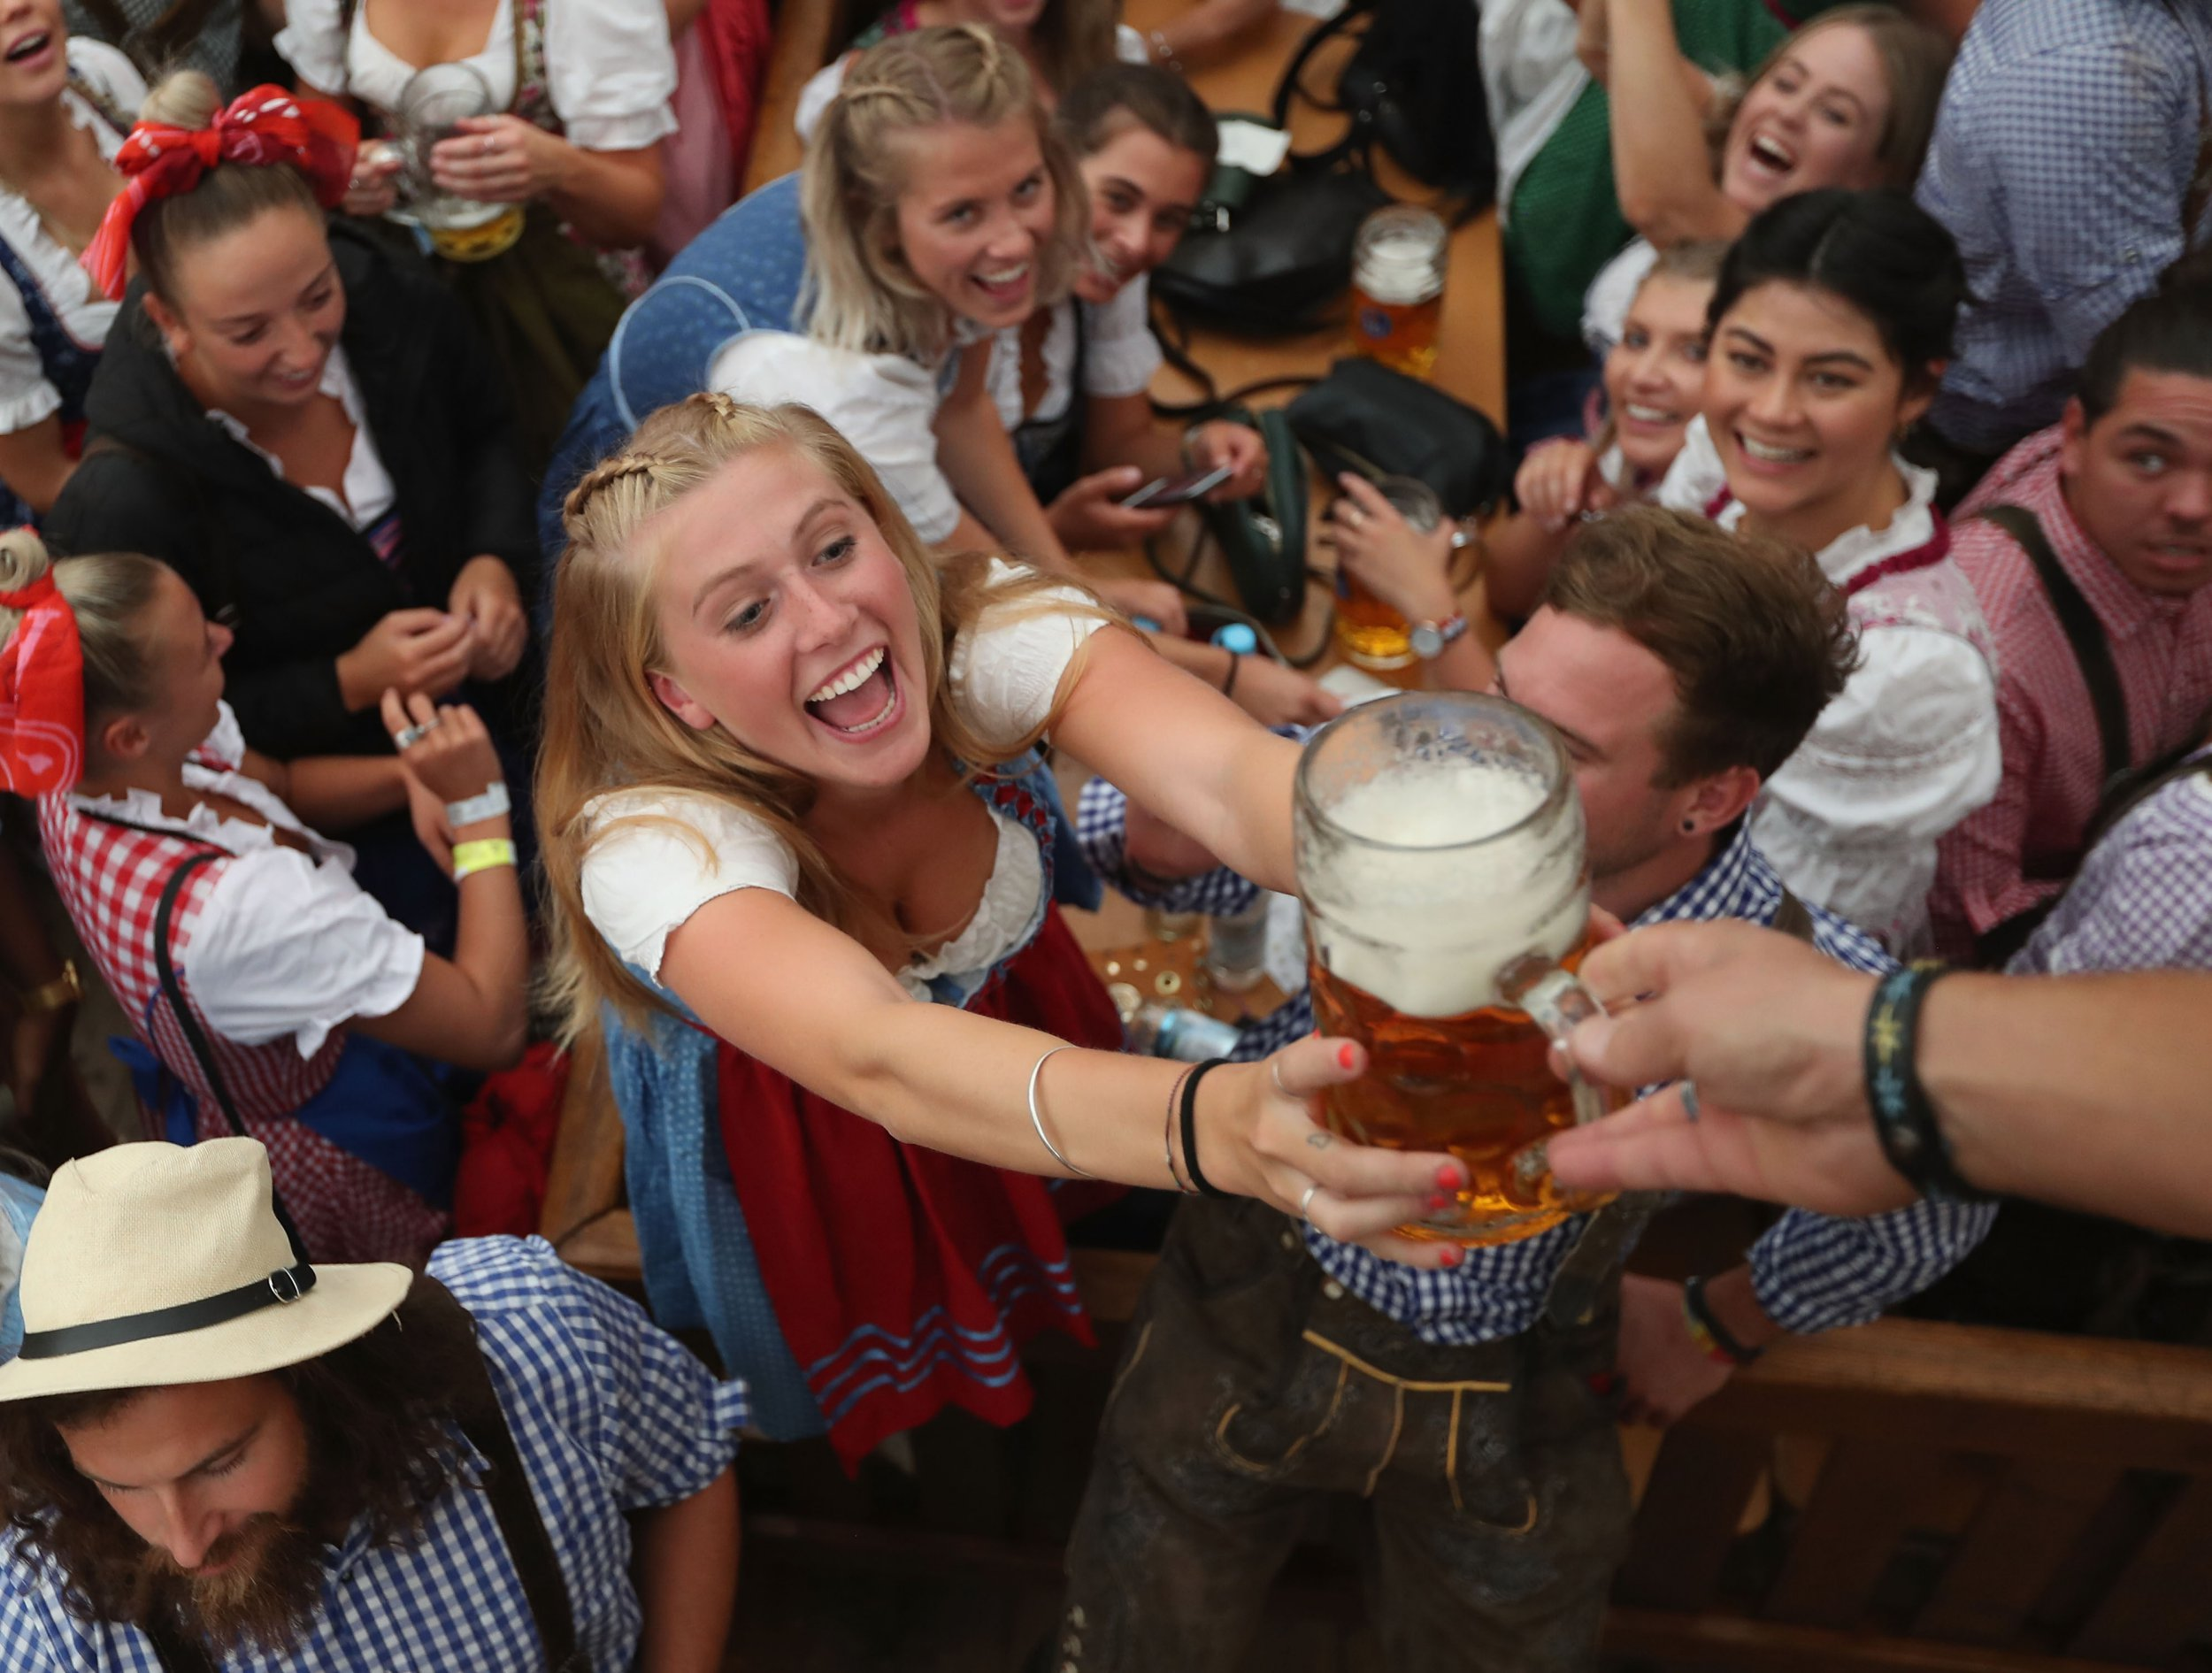 MUNICH, GERMANY - SEPTEMBER 22: Visitors celebrate in a beer tent at the opening day of the 2018 Oktoberfest beer festival on September 22, 2018 in Munich, Germany. The Oktoberfest lasts until October 7 and is the world's largest beer festival. The beer festival typically draws over six million visitors. (Photo by Alexandra Beier/Getty Images)